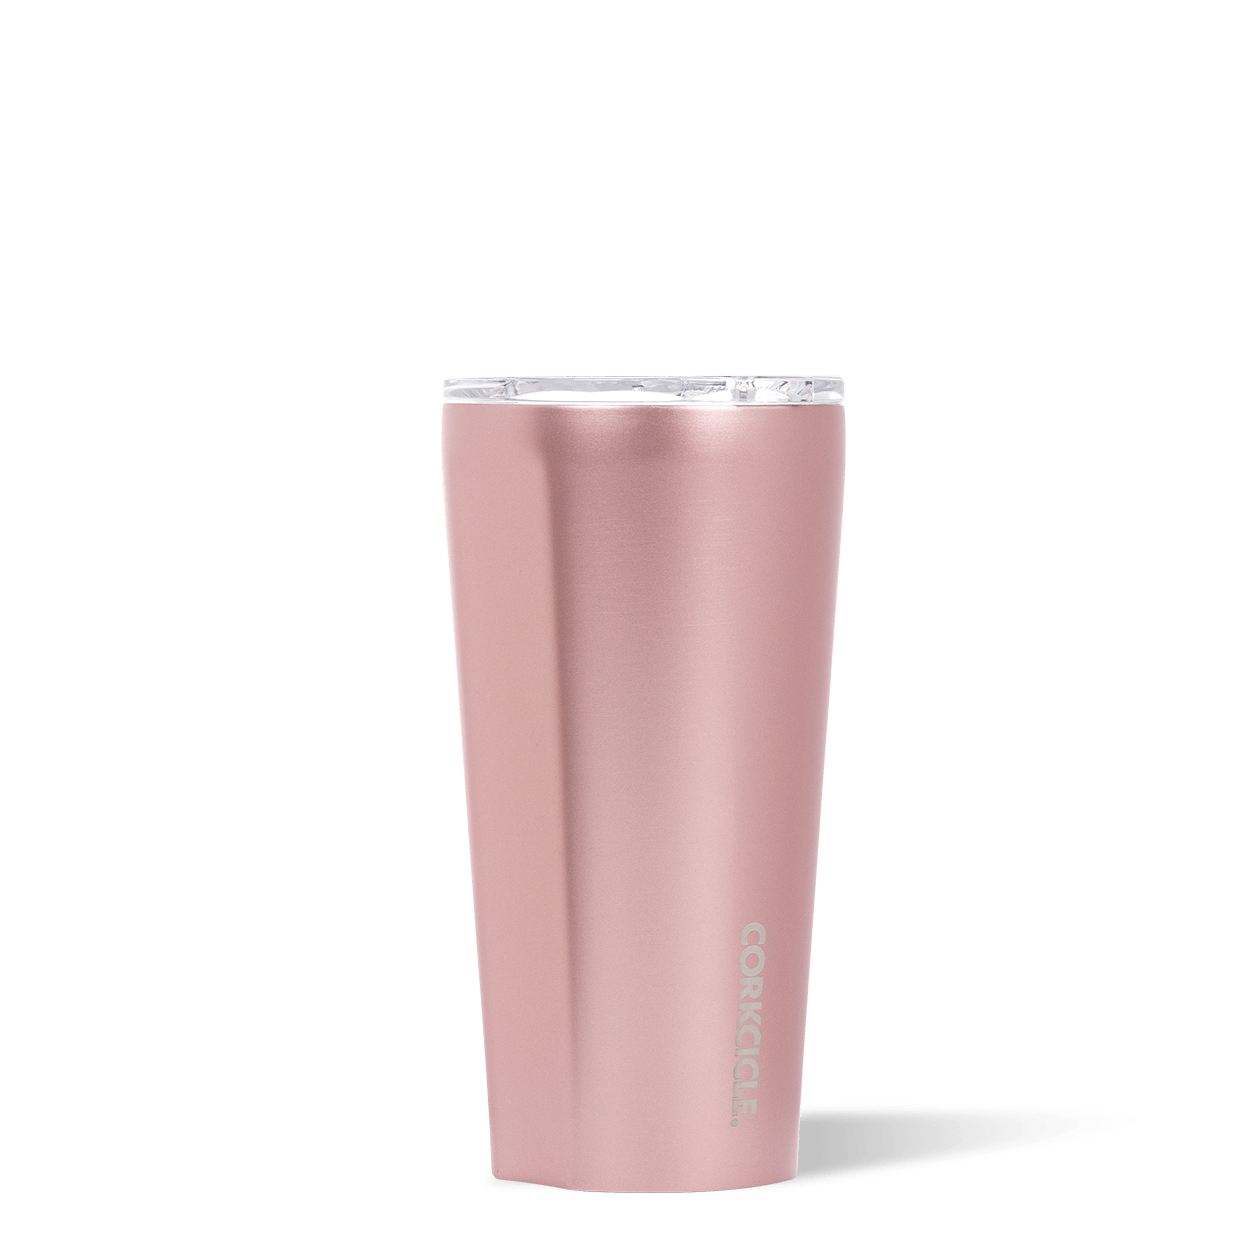 Corkcicle 16oz Rosé Metallic Tumbler Side View.